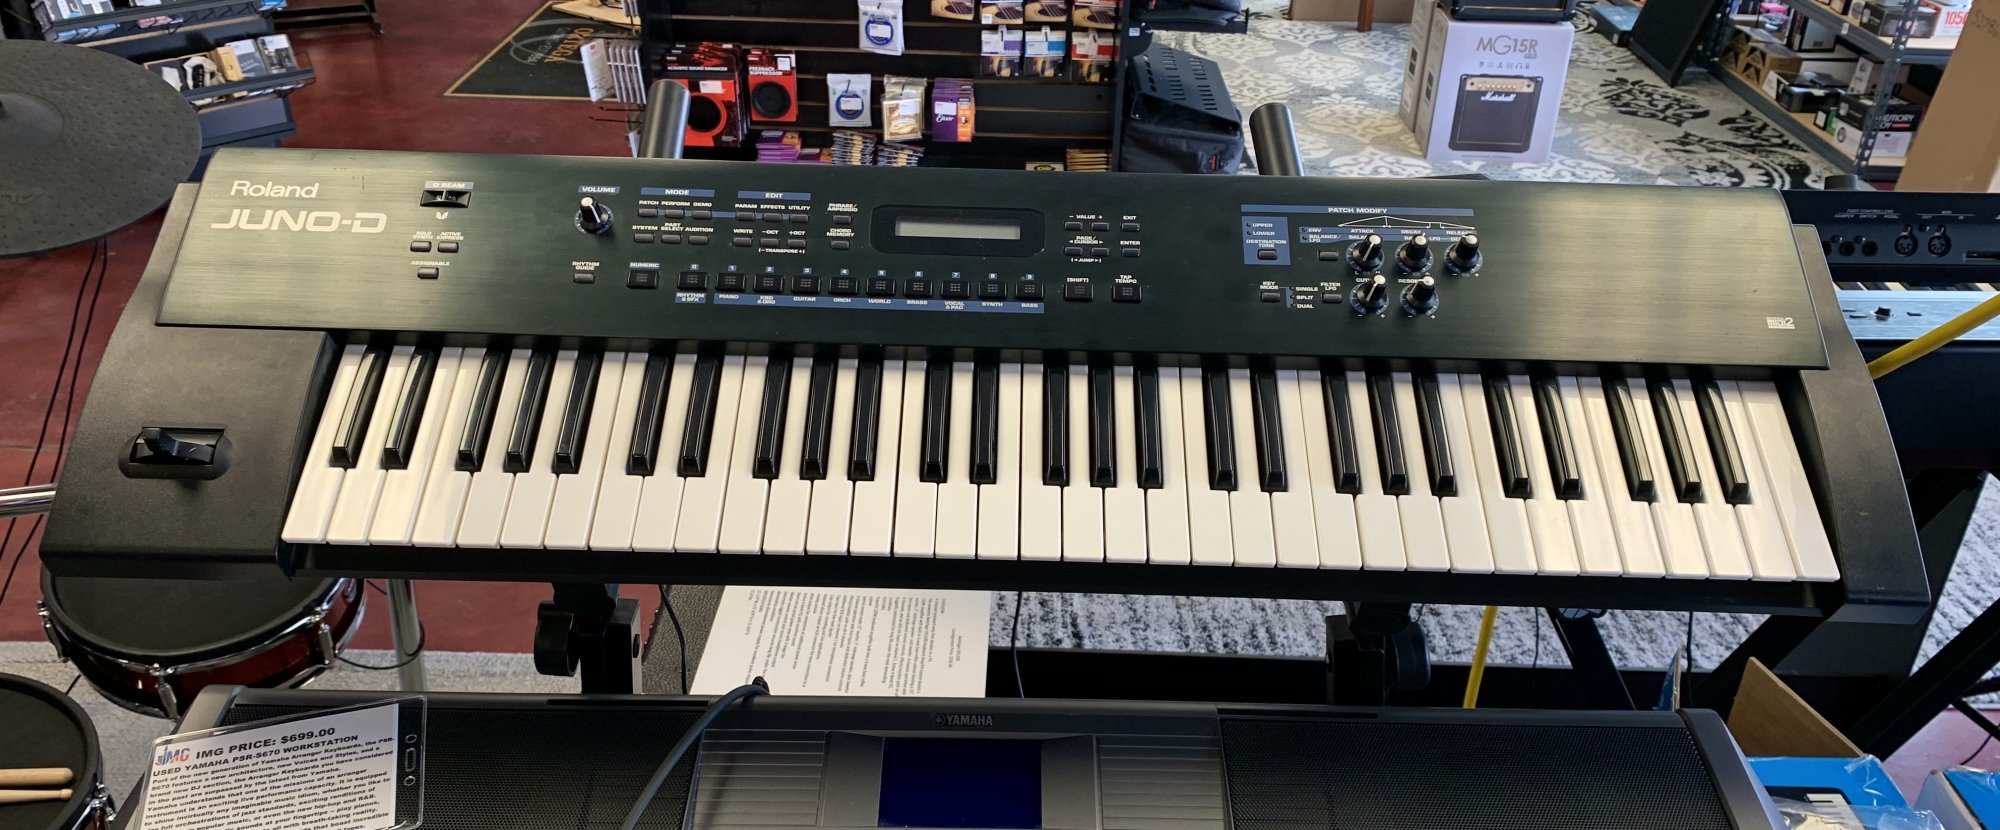 Used (Consignment) Roland Juno D Keyboard